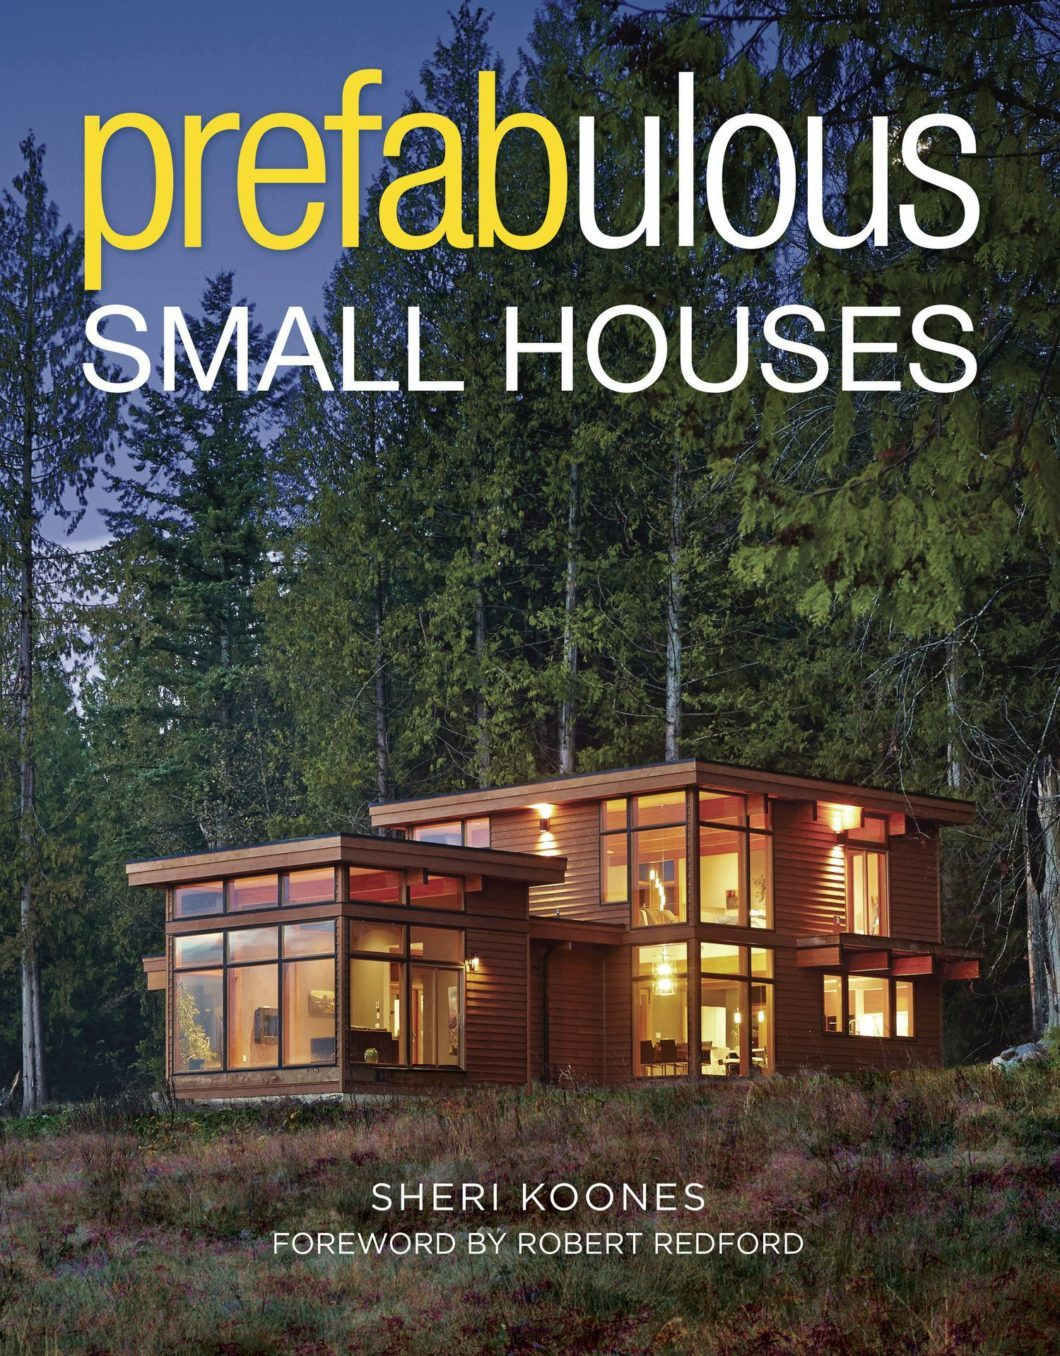 Small Eco Friendly House Plans Luxury New Book Prefabulous Small Houses with foreword by Robert